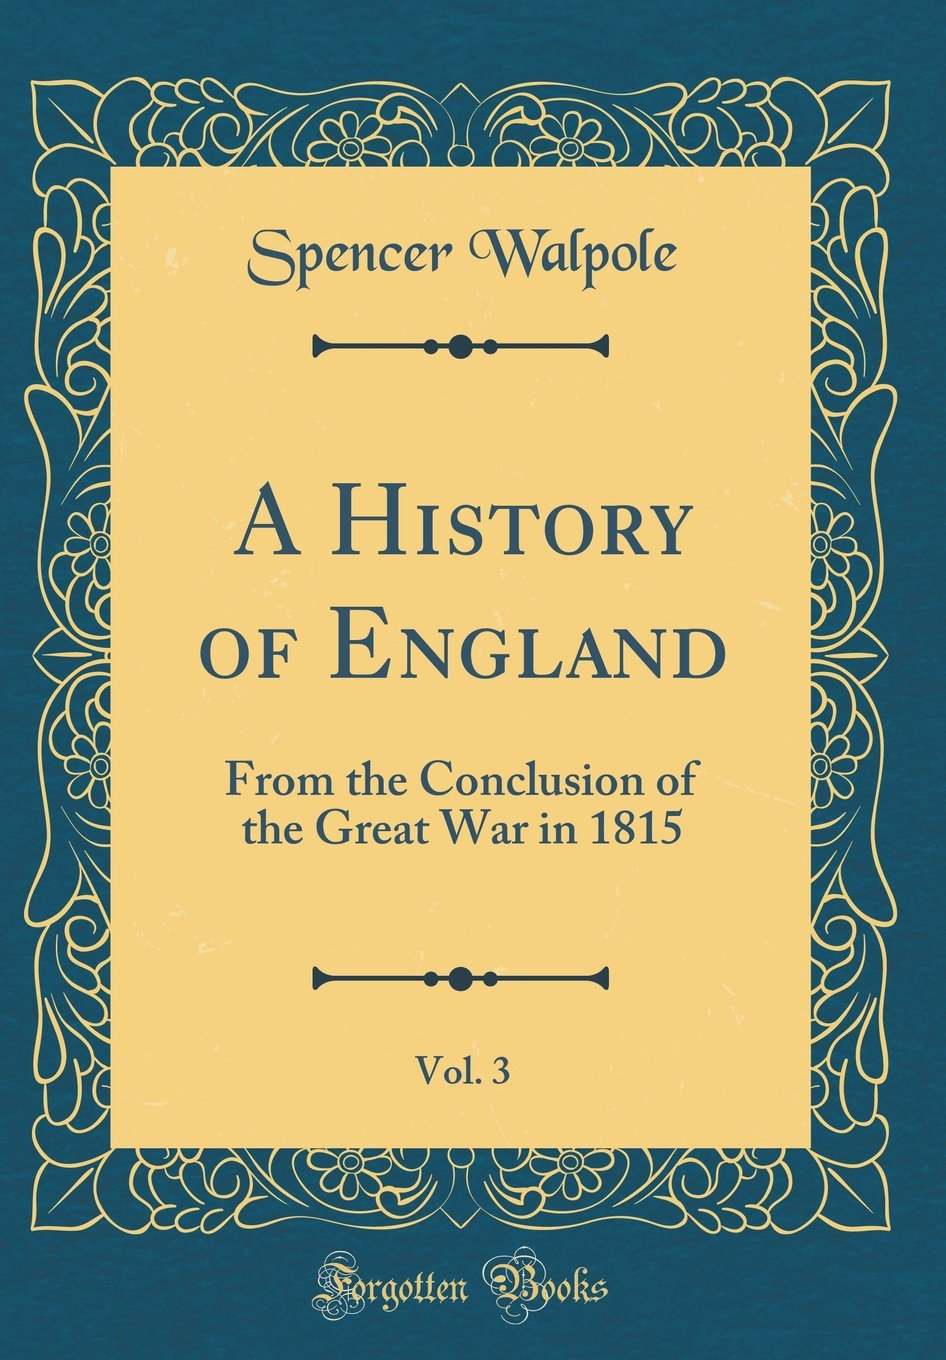 Read Online A History of England, Vol. 3: From the Conclusion of the Great War in 1815 (Classic Reprint) PDF